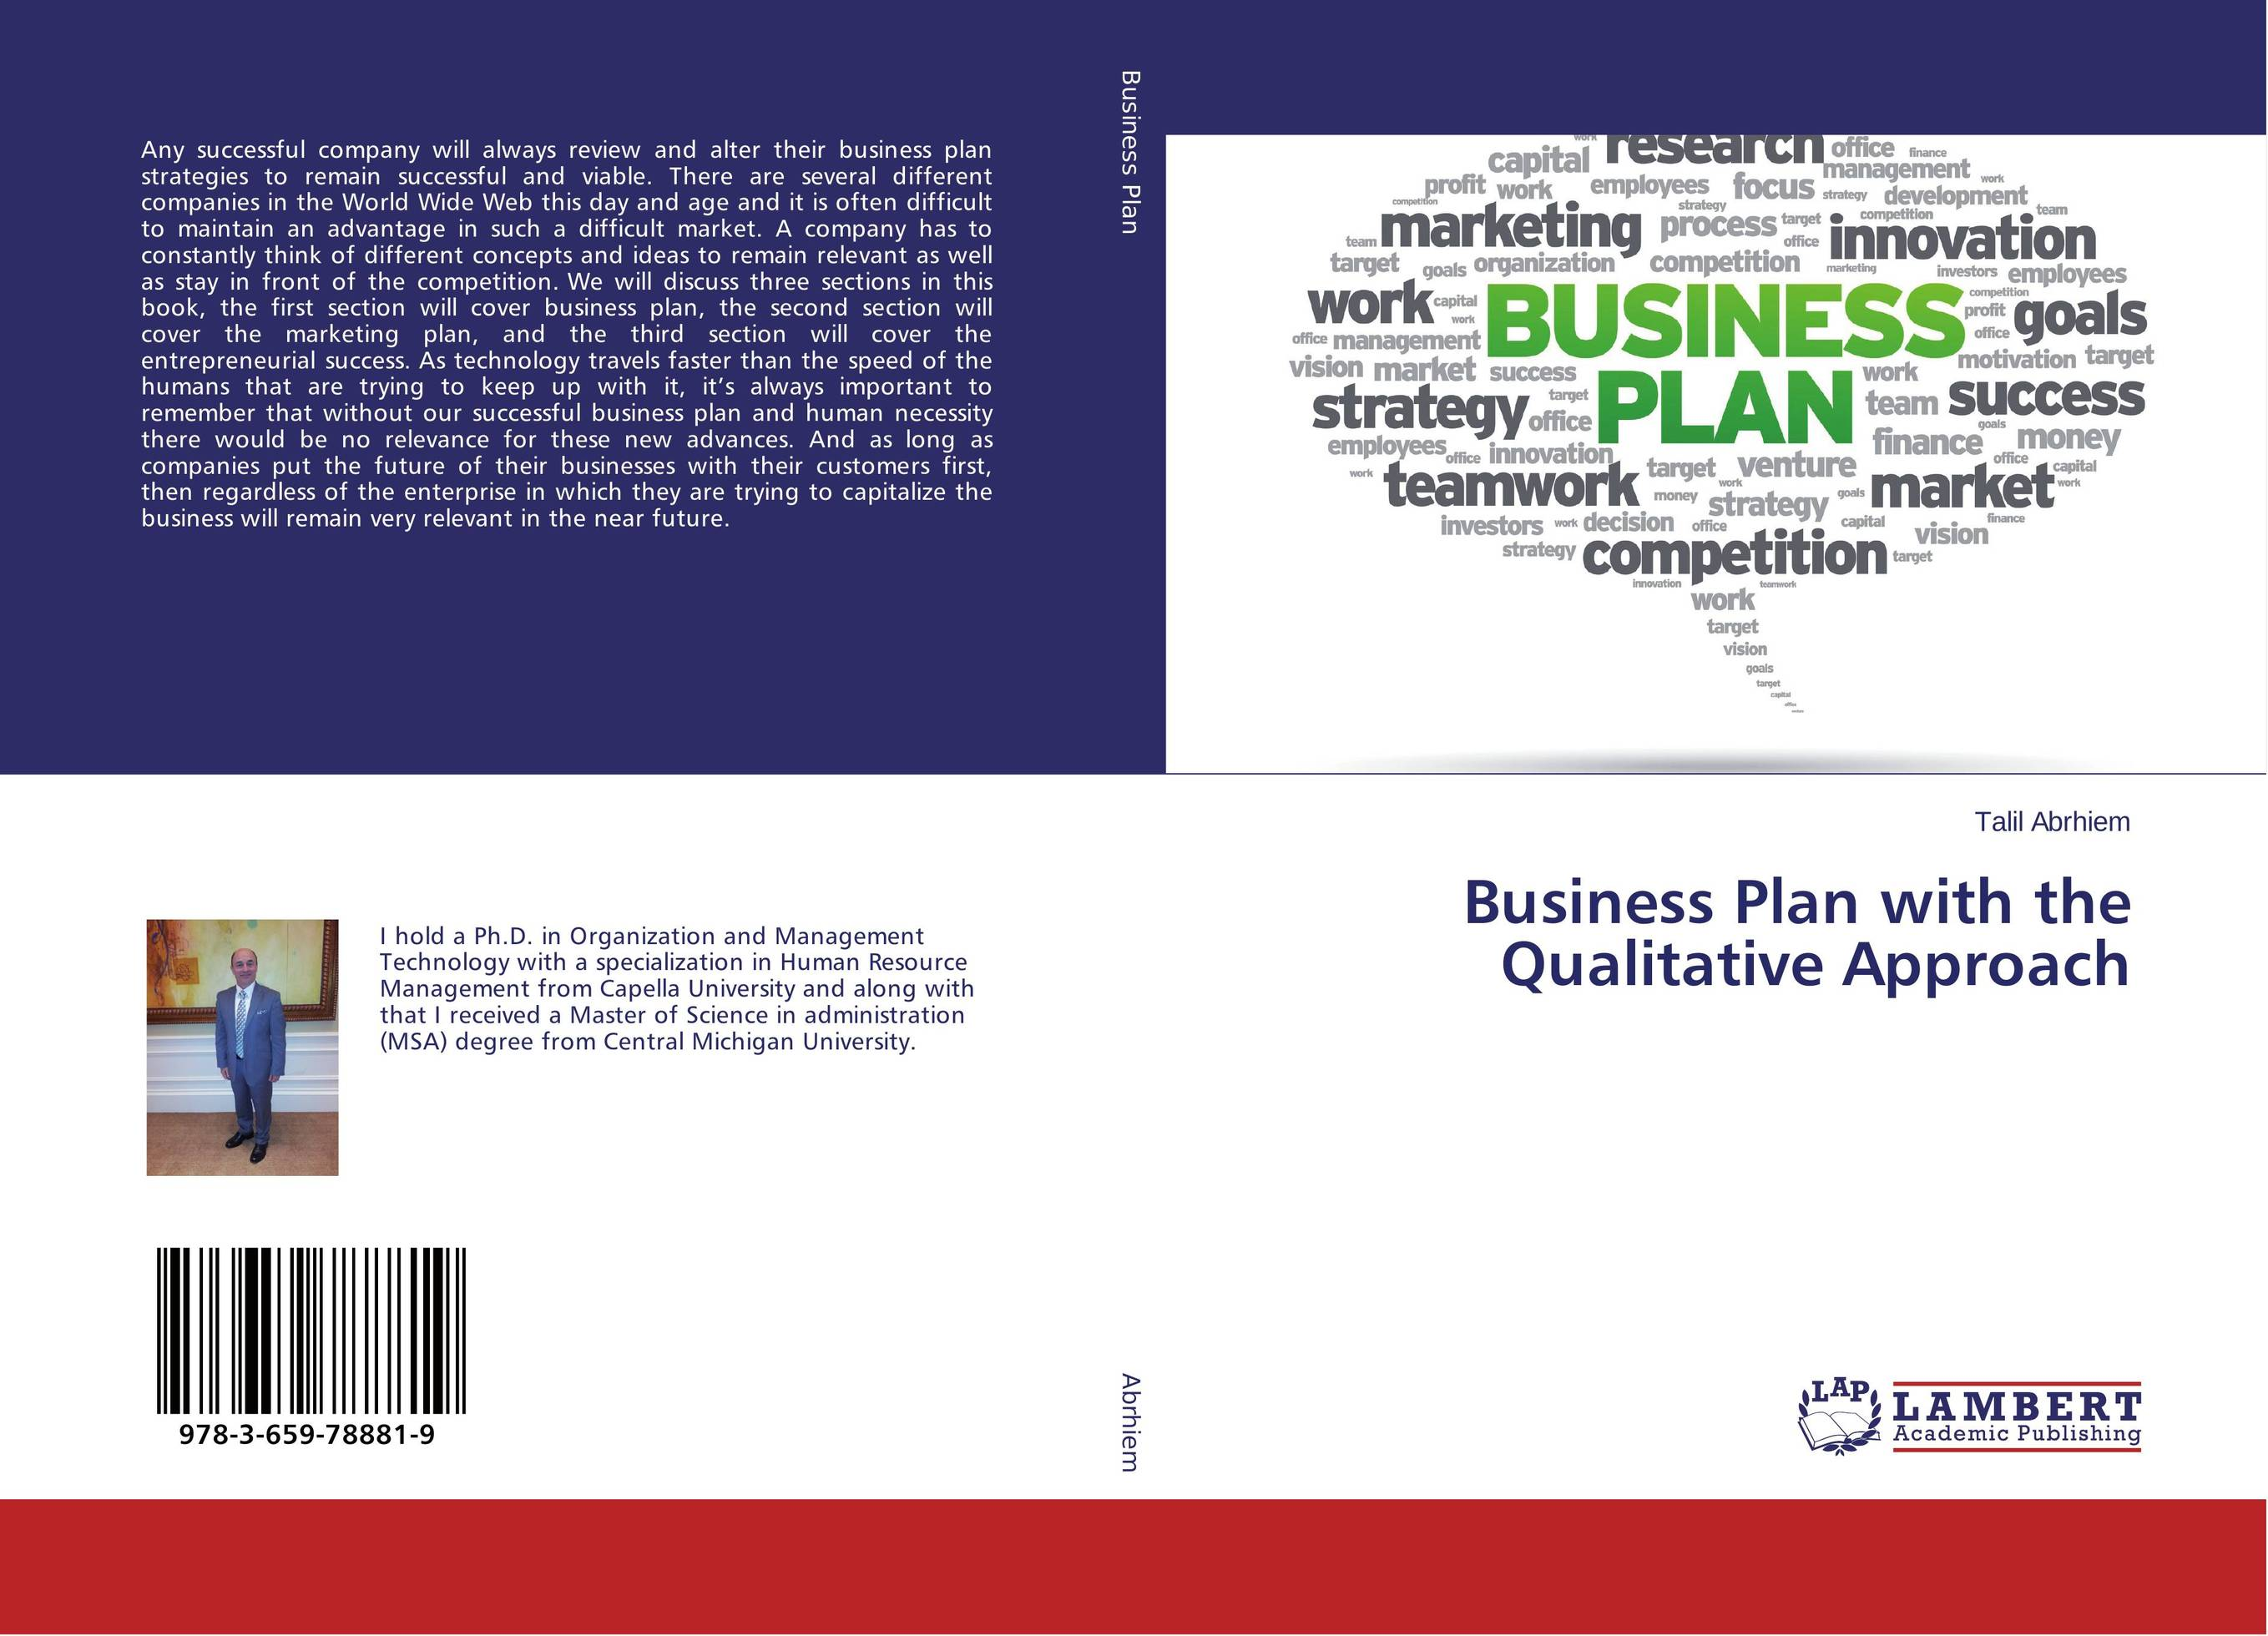 Business Plan with the Qualitative Approach business plan for a start up of an information brokering company